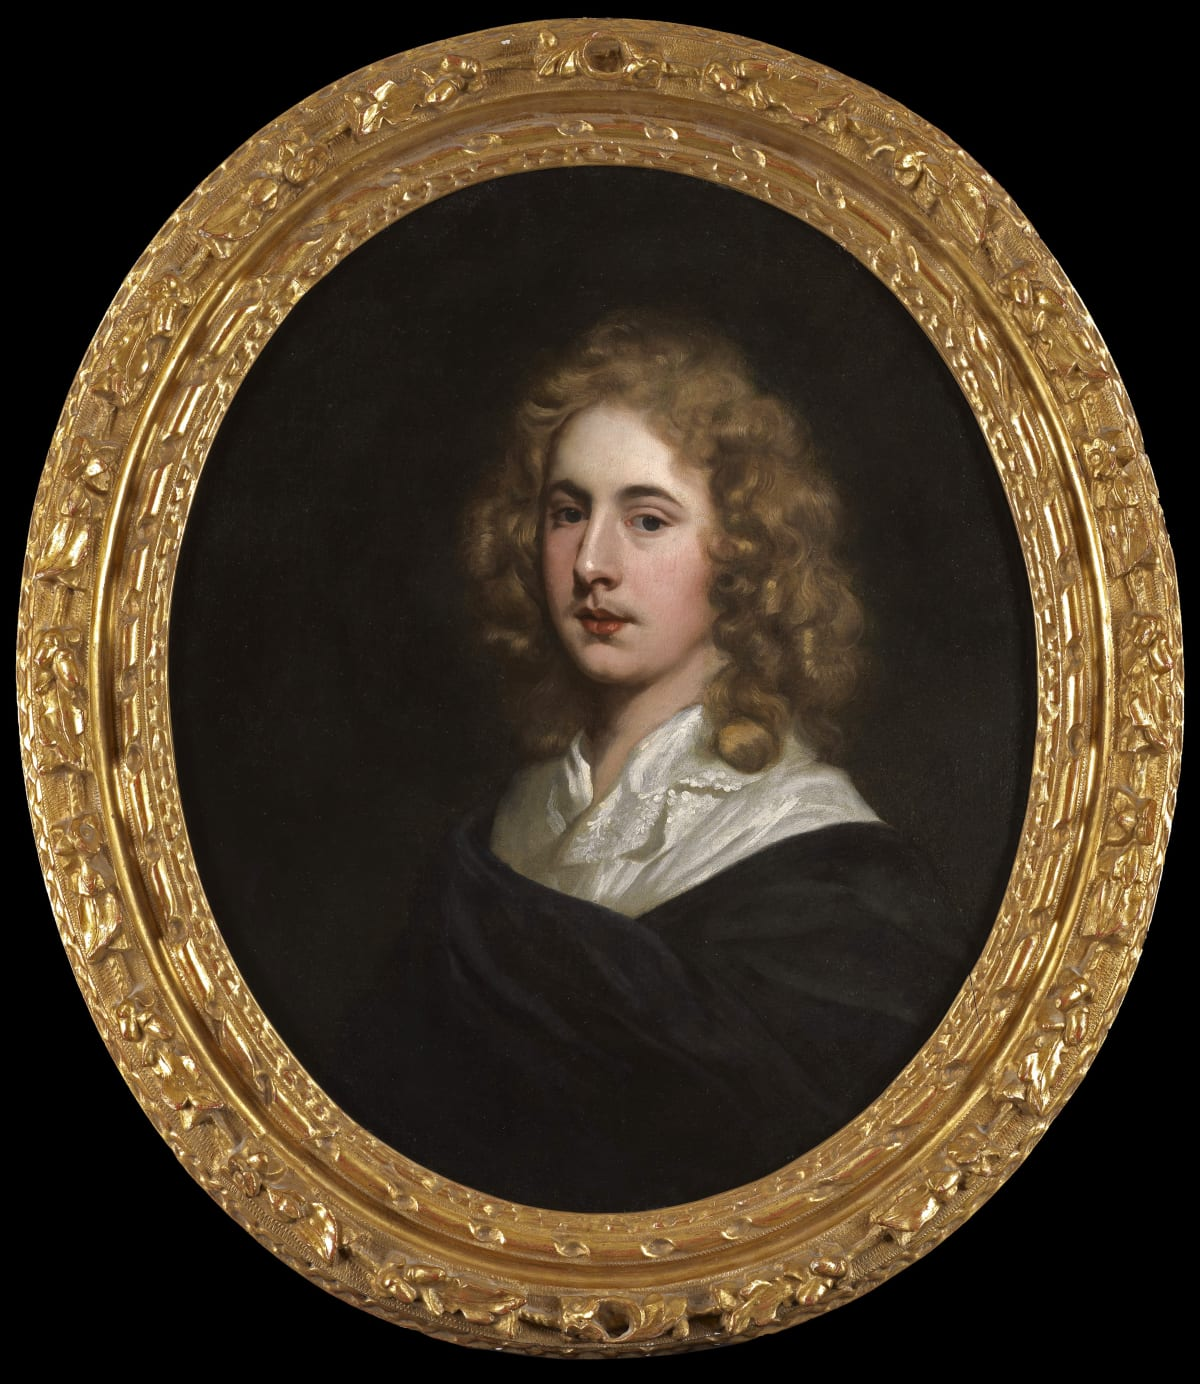 Studio of Sir Peter Lely (1618 - 1680) An Unknown Young Man, circa 1660s Oil on canvas 30 x 25 in. (76.2 x 63.5 cm.)